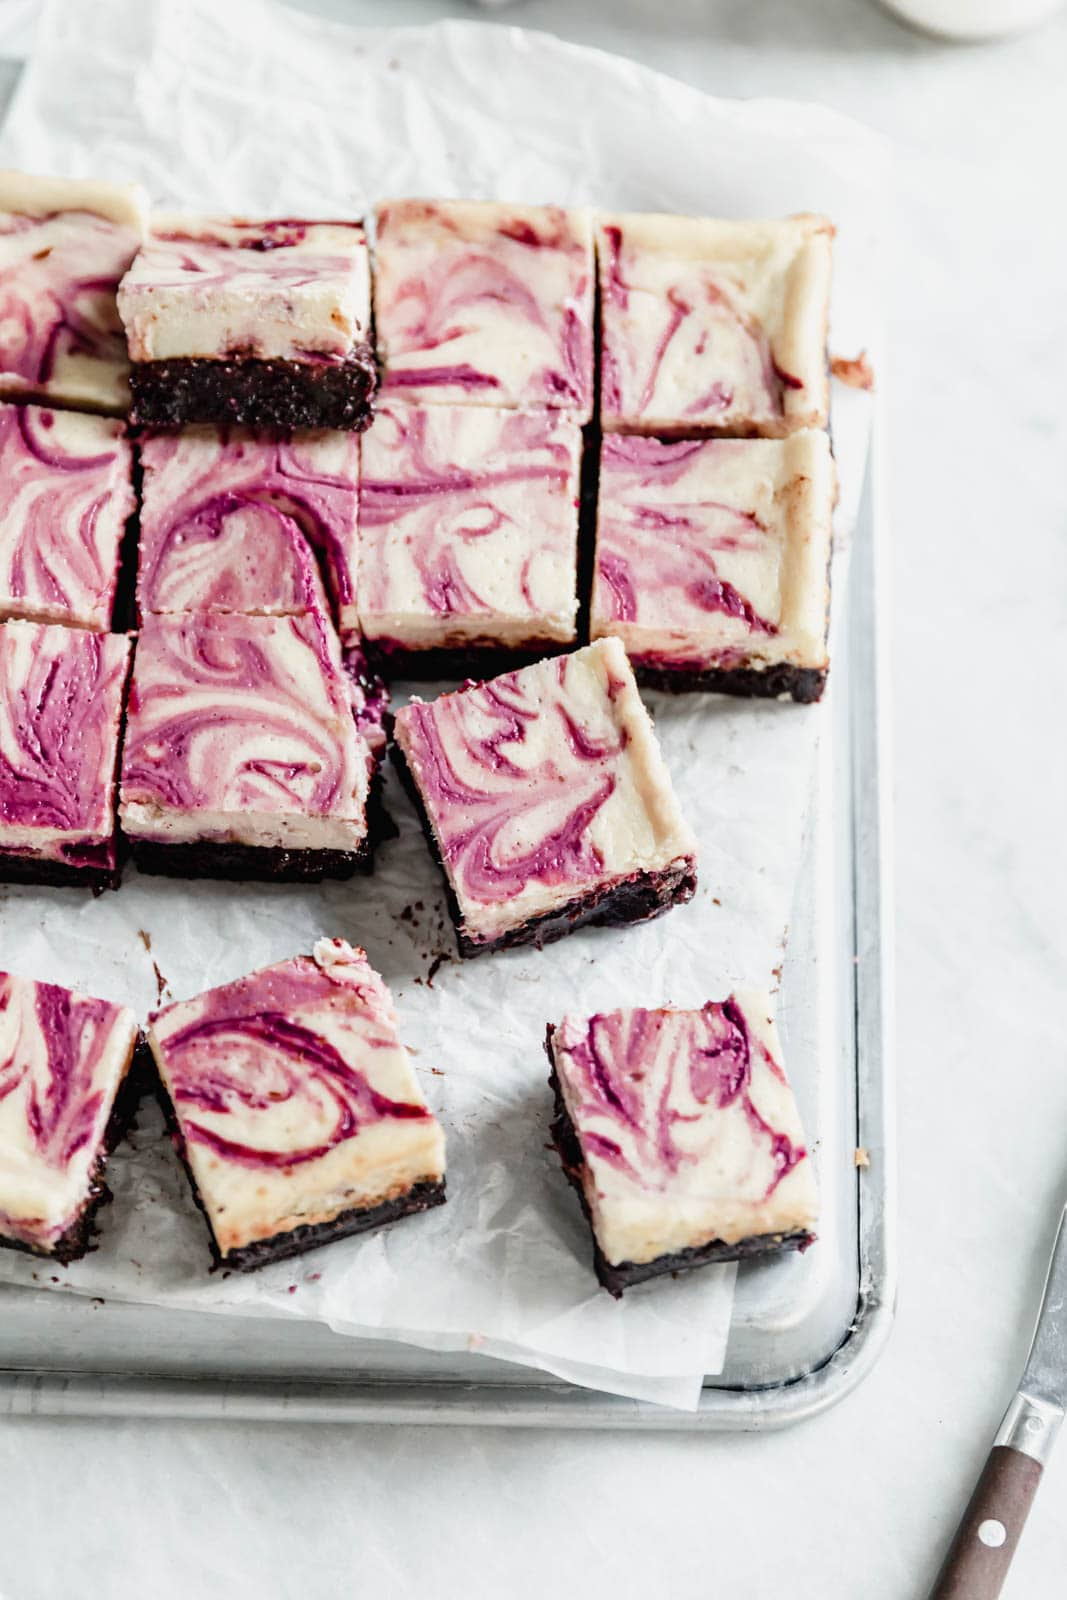 Rich fudge brownies topped with creamy cheesecake and a sinful black cherry swirl. Easy to make and even easier to devour.